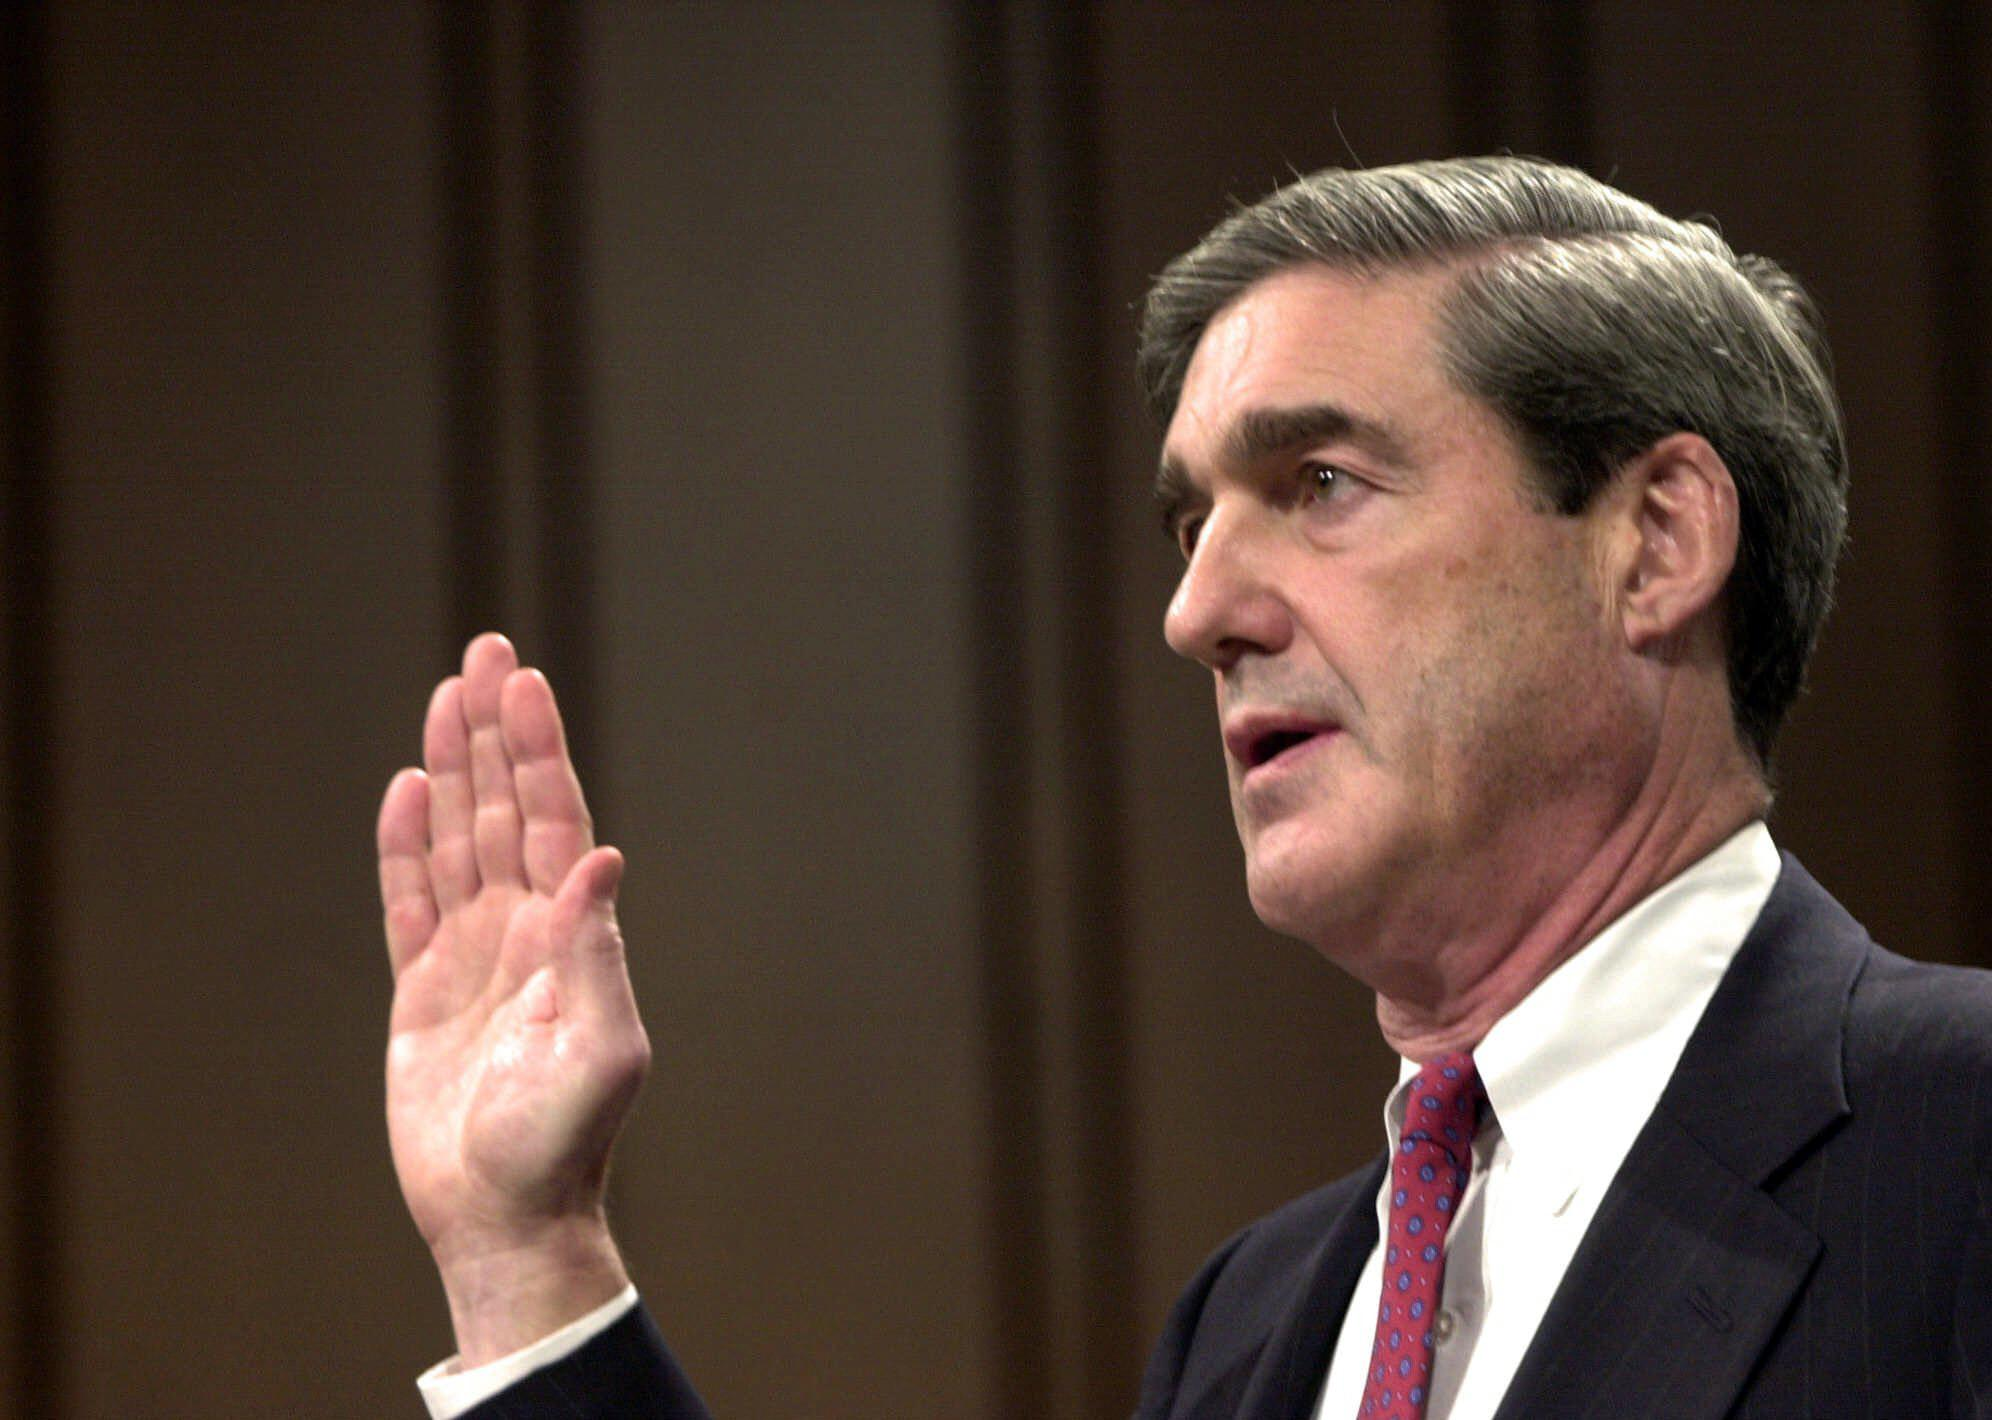 FILE - In this July 30, 2001, file photo, Robert Mueller is sworn in at the start of his testimony during his confirmation hearing before the Senate Judiciary Committee on Capitol Hill in Washington, to be the FBI director. Mueller took office as FBI director in 2001 expecting to dig into drug cases, white-collar misdeeds and violent crime. A week later was Sept. 11. Overnight, his mission changed and Mueller spent the next 12 years wrestling the agency into a battle-hardened terrorism-fighting force. (AP Photo/Dennis Cook, File)